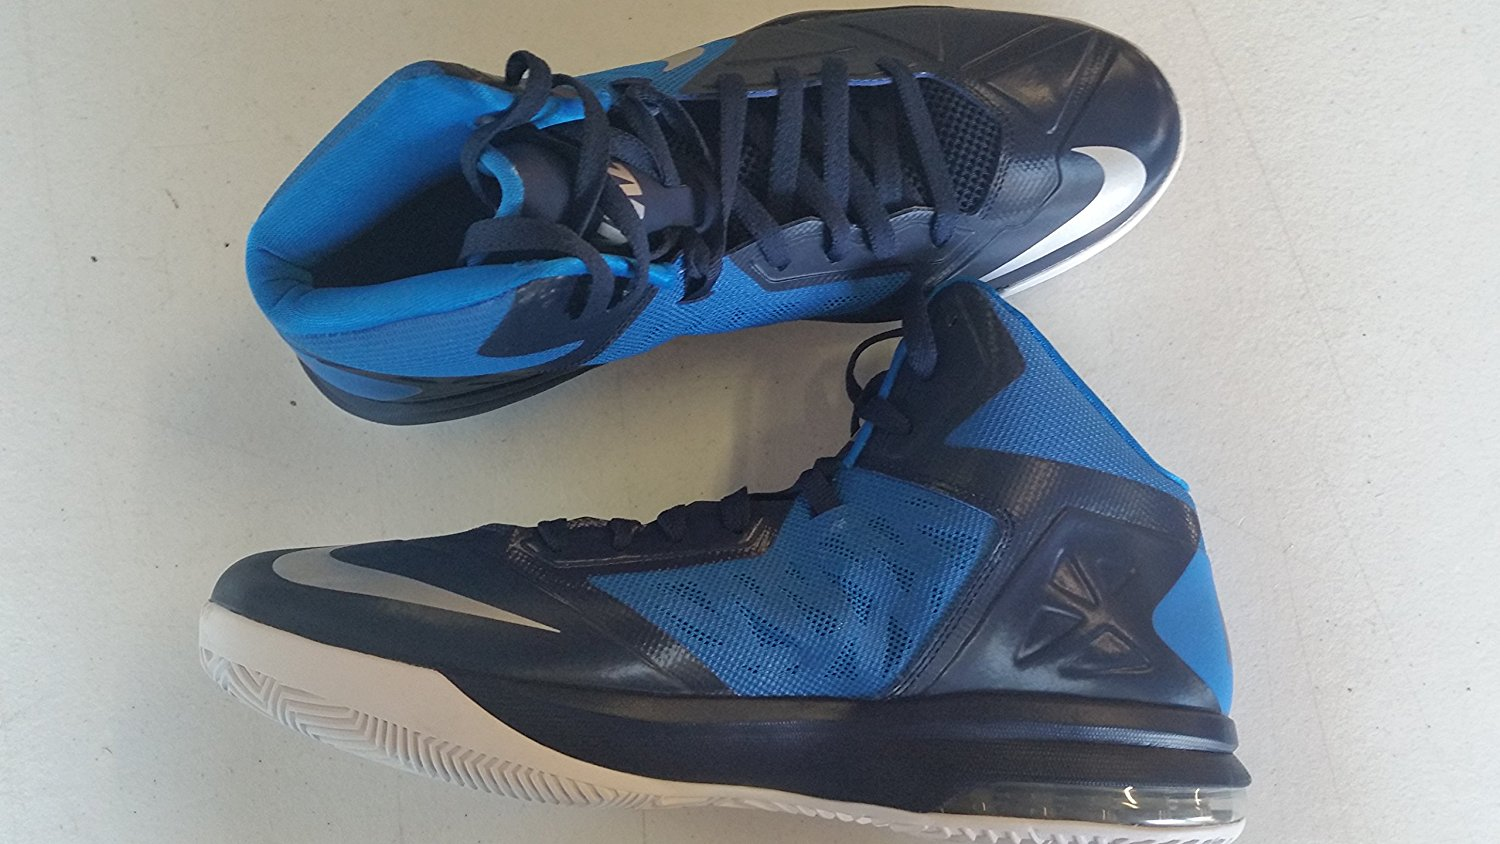 Nike Air Max Hyped Basketball Giverny Bleu Musée des impressionnismes Giverny Basketball be26cb